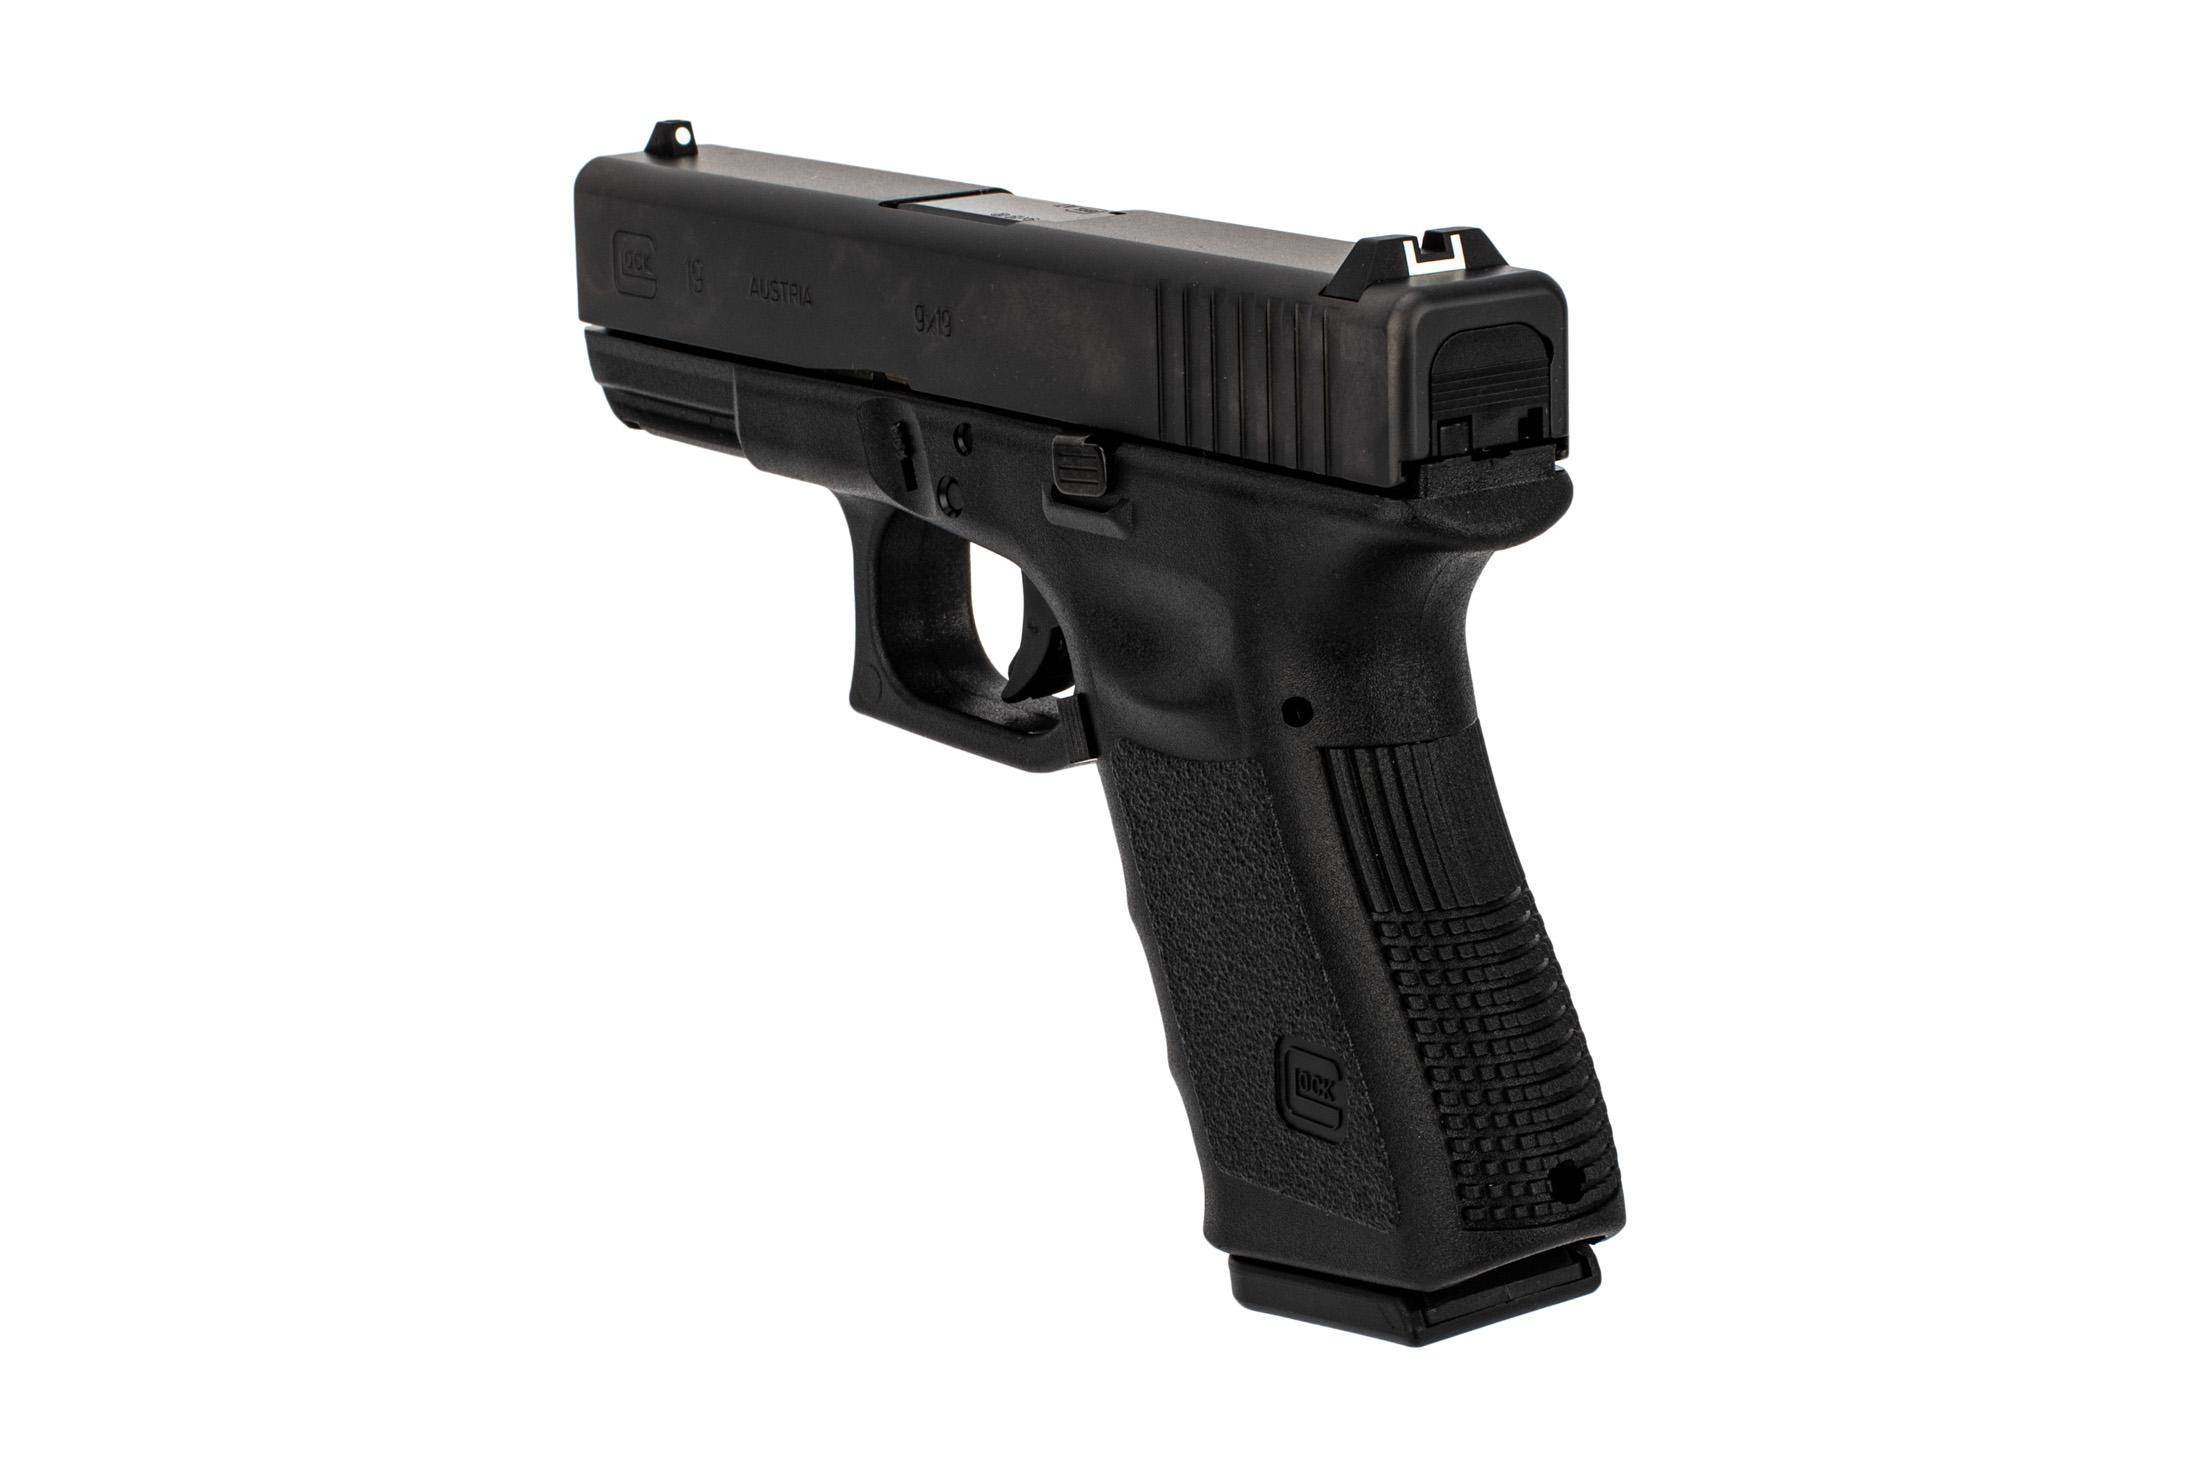 Glock 19 Gen 3 in 9mm with Dot-and-Bucket sights and and reduced capacity magazine